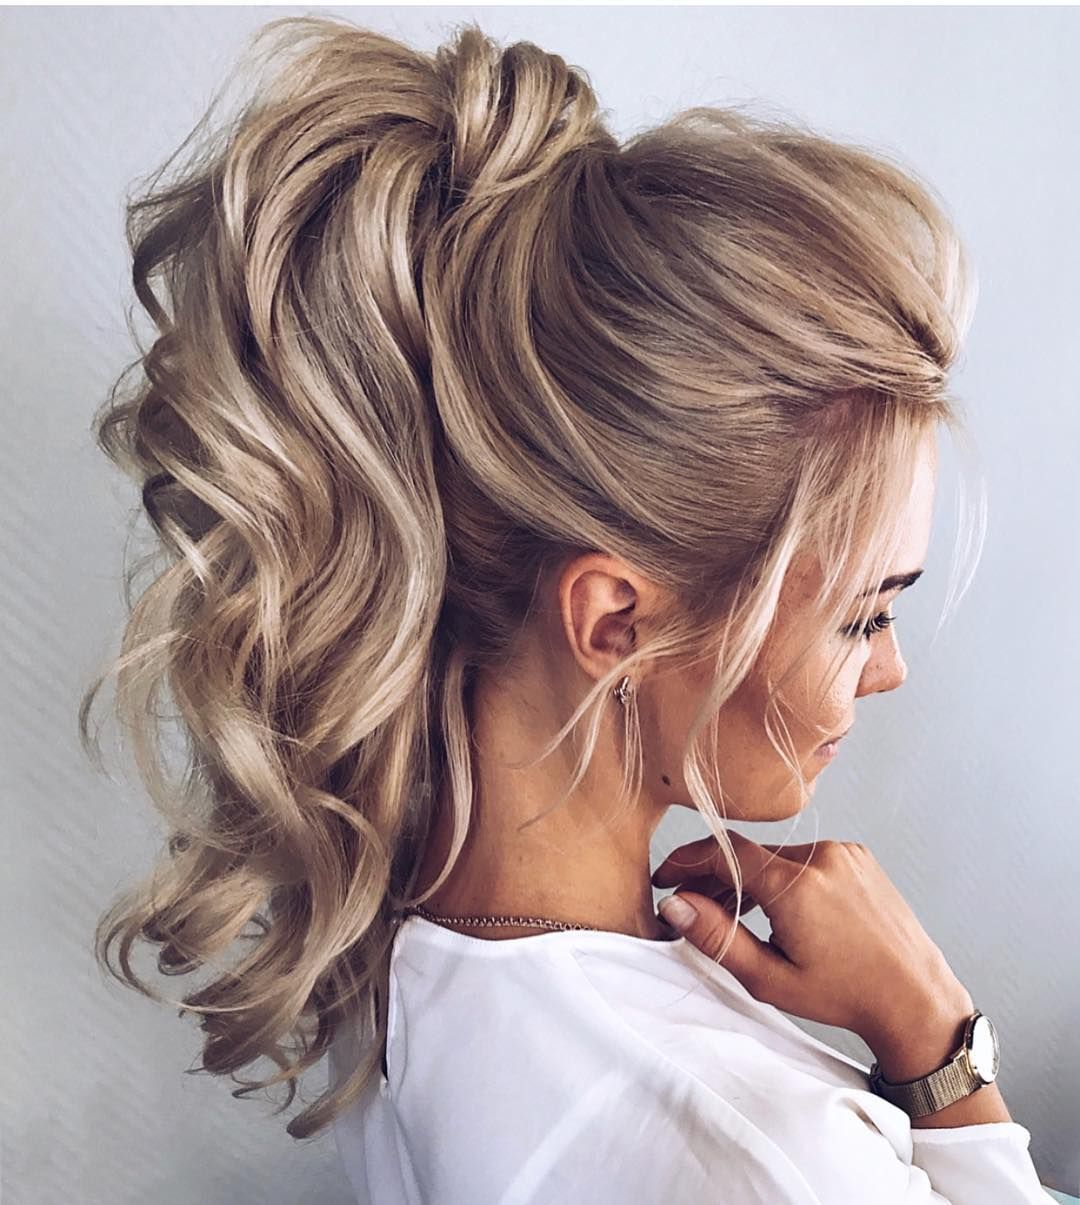 Updo Hairstyle Wedding Hair Updo Hairstyles Messyupdo Ponytails Hair Weddinghairstyles Night Hairstyles Hair Styles Wedding Ponytail